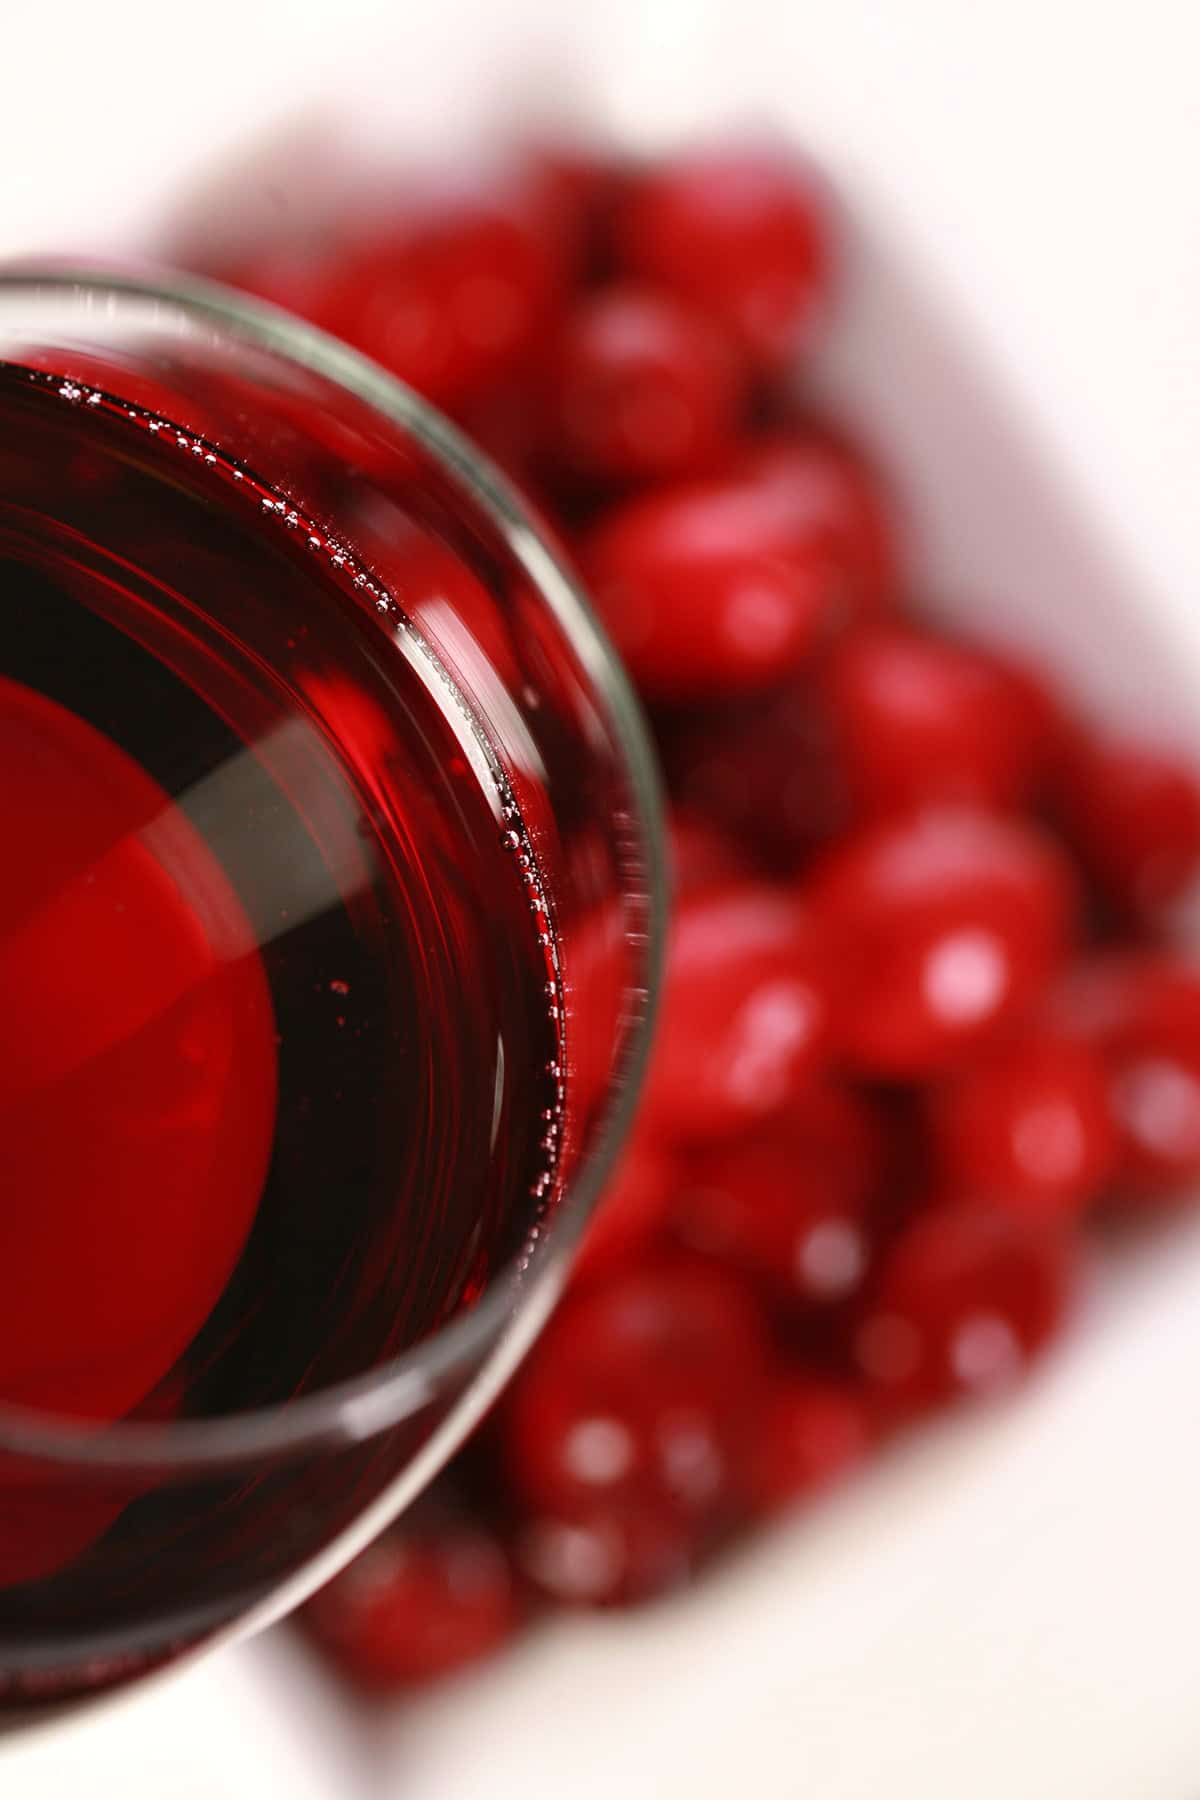 A glass of red wine -made with this cranberry wine recipe - is pictured next to a small bowl of fresh cranberries, against a white background.